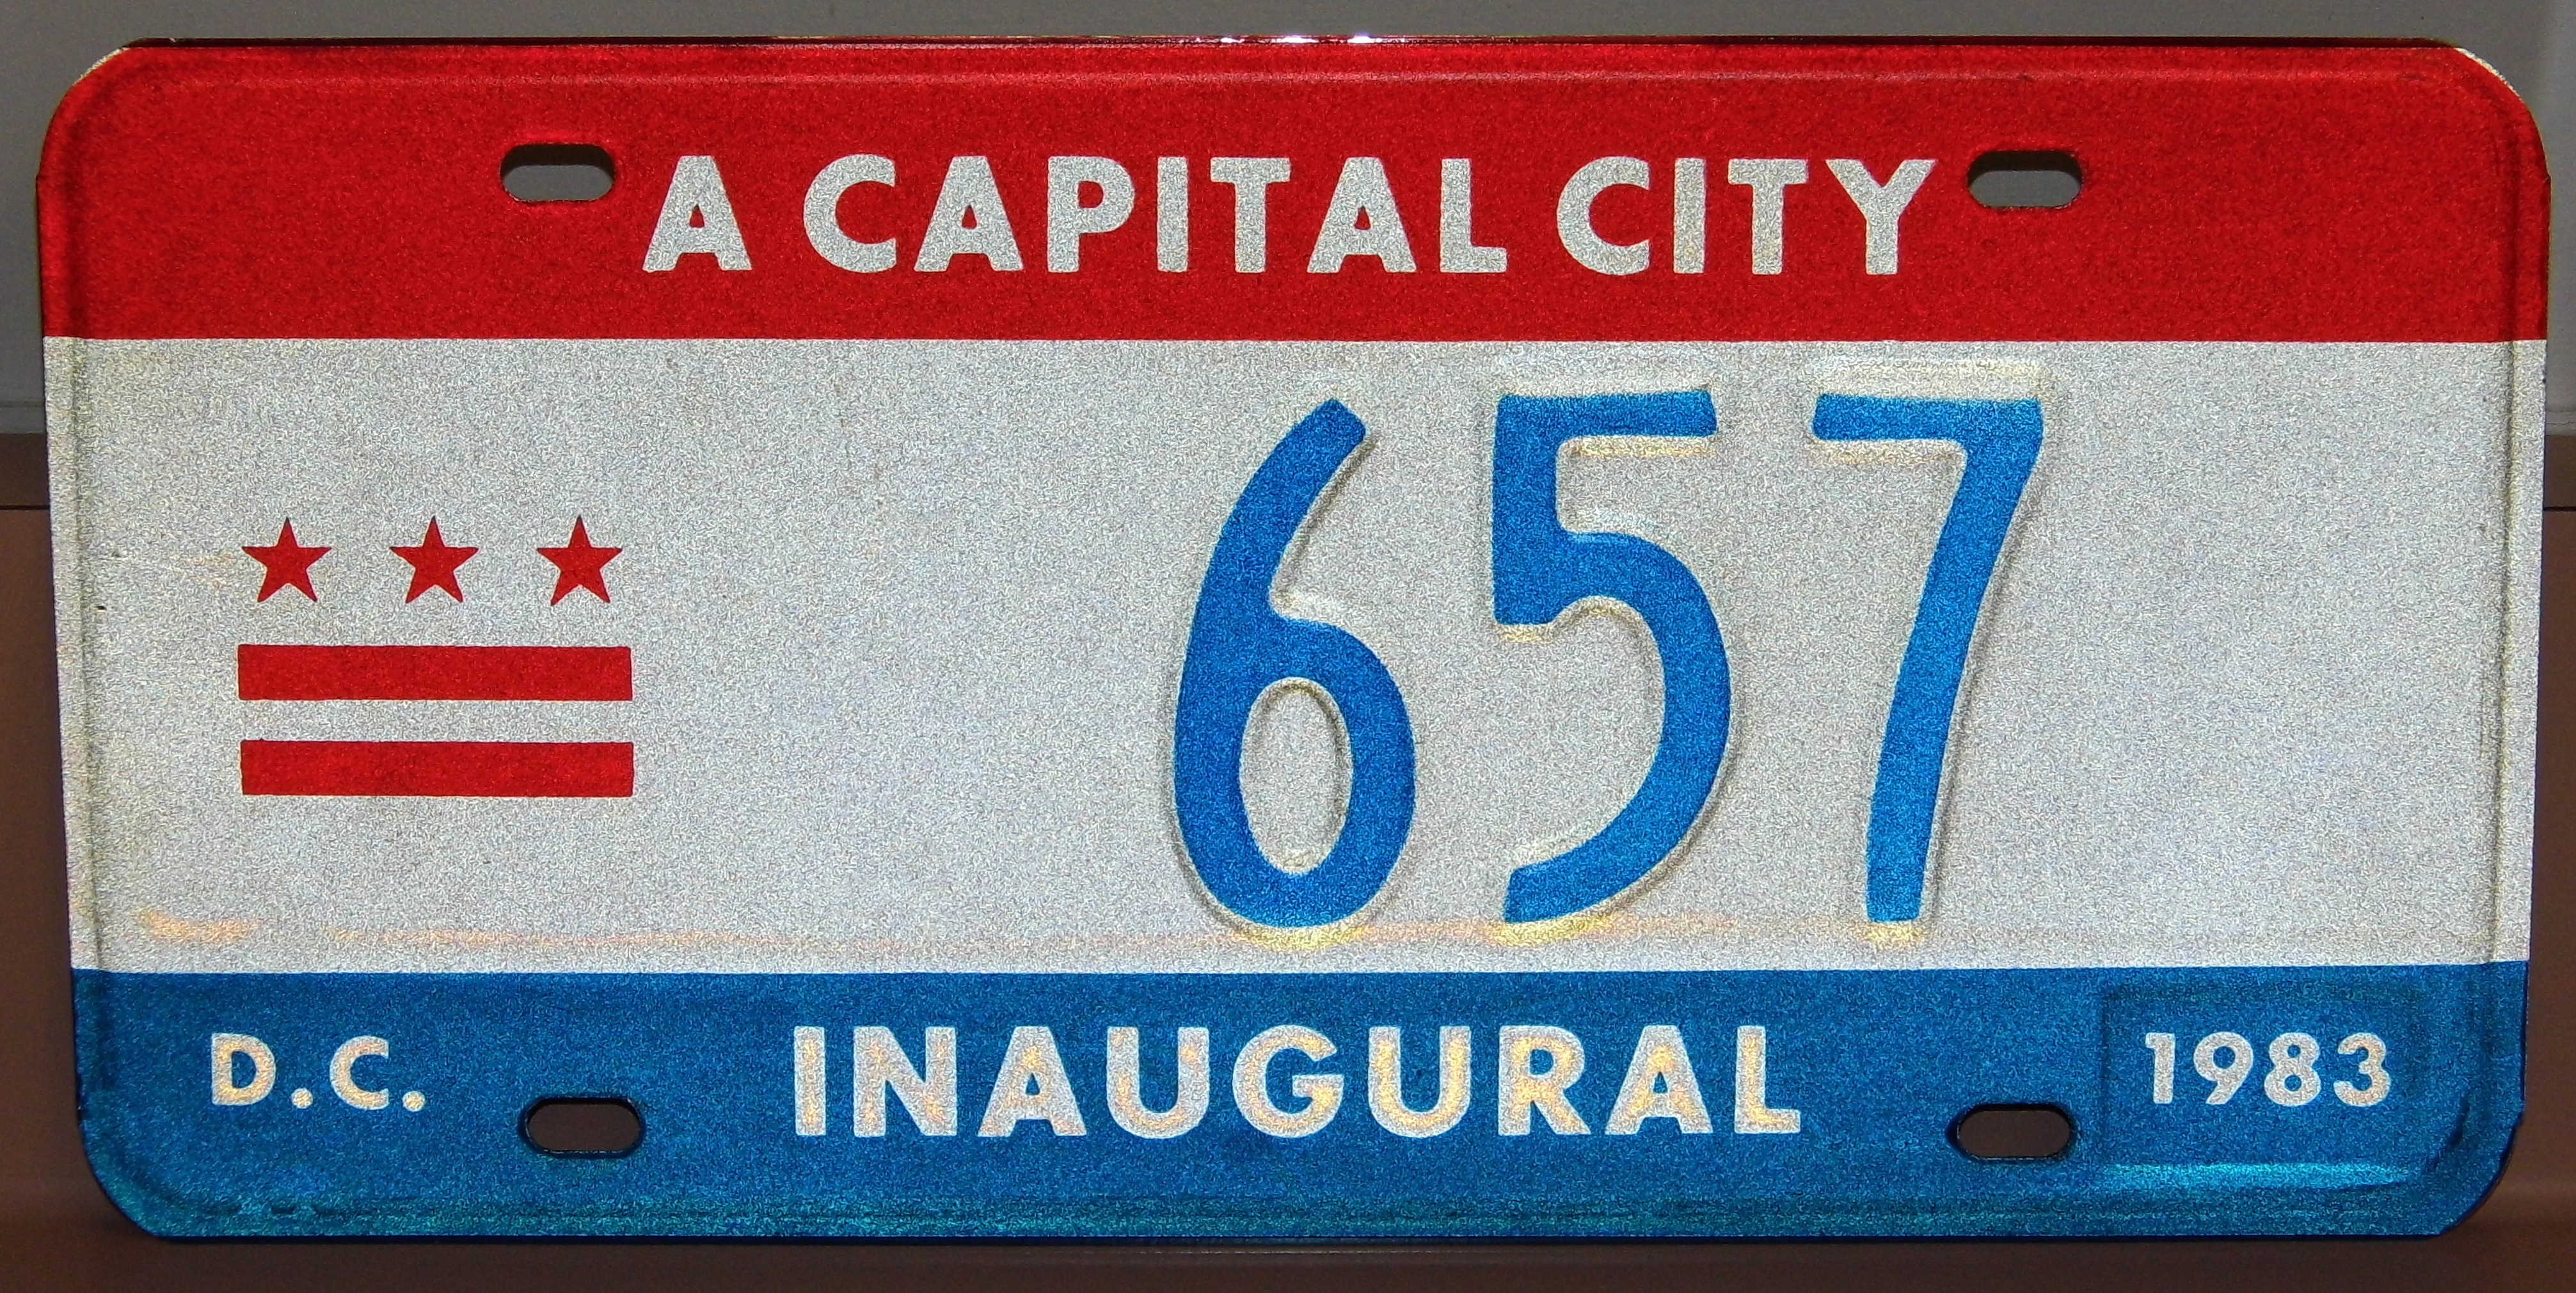 Vintage_1983_Washington_D.C._Mayoral_Inaugural_License_Plate_-657%2C_Only_1K_Made_To_Commorate_The_Inauguration_Of_Mayor_Marion_Barry_%2817042813131%29.jpg